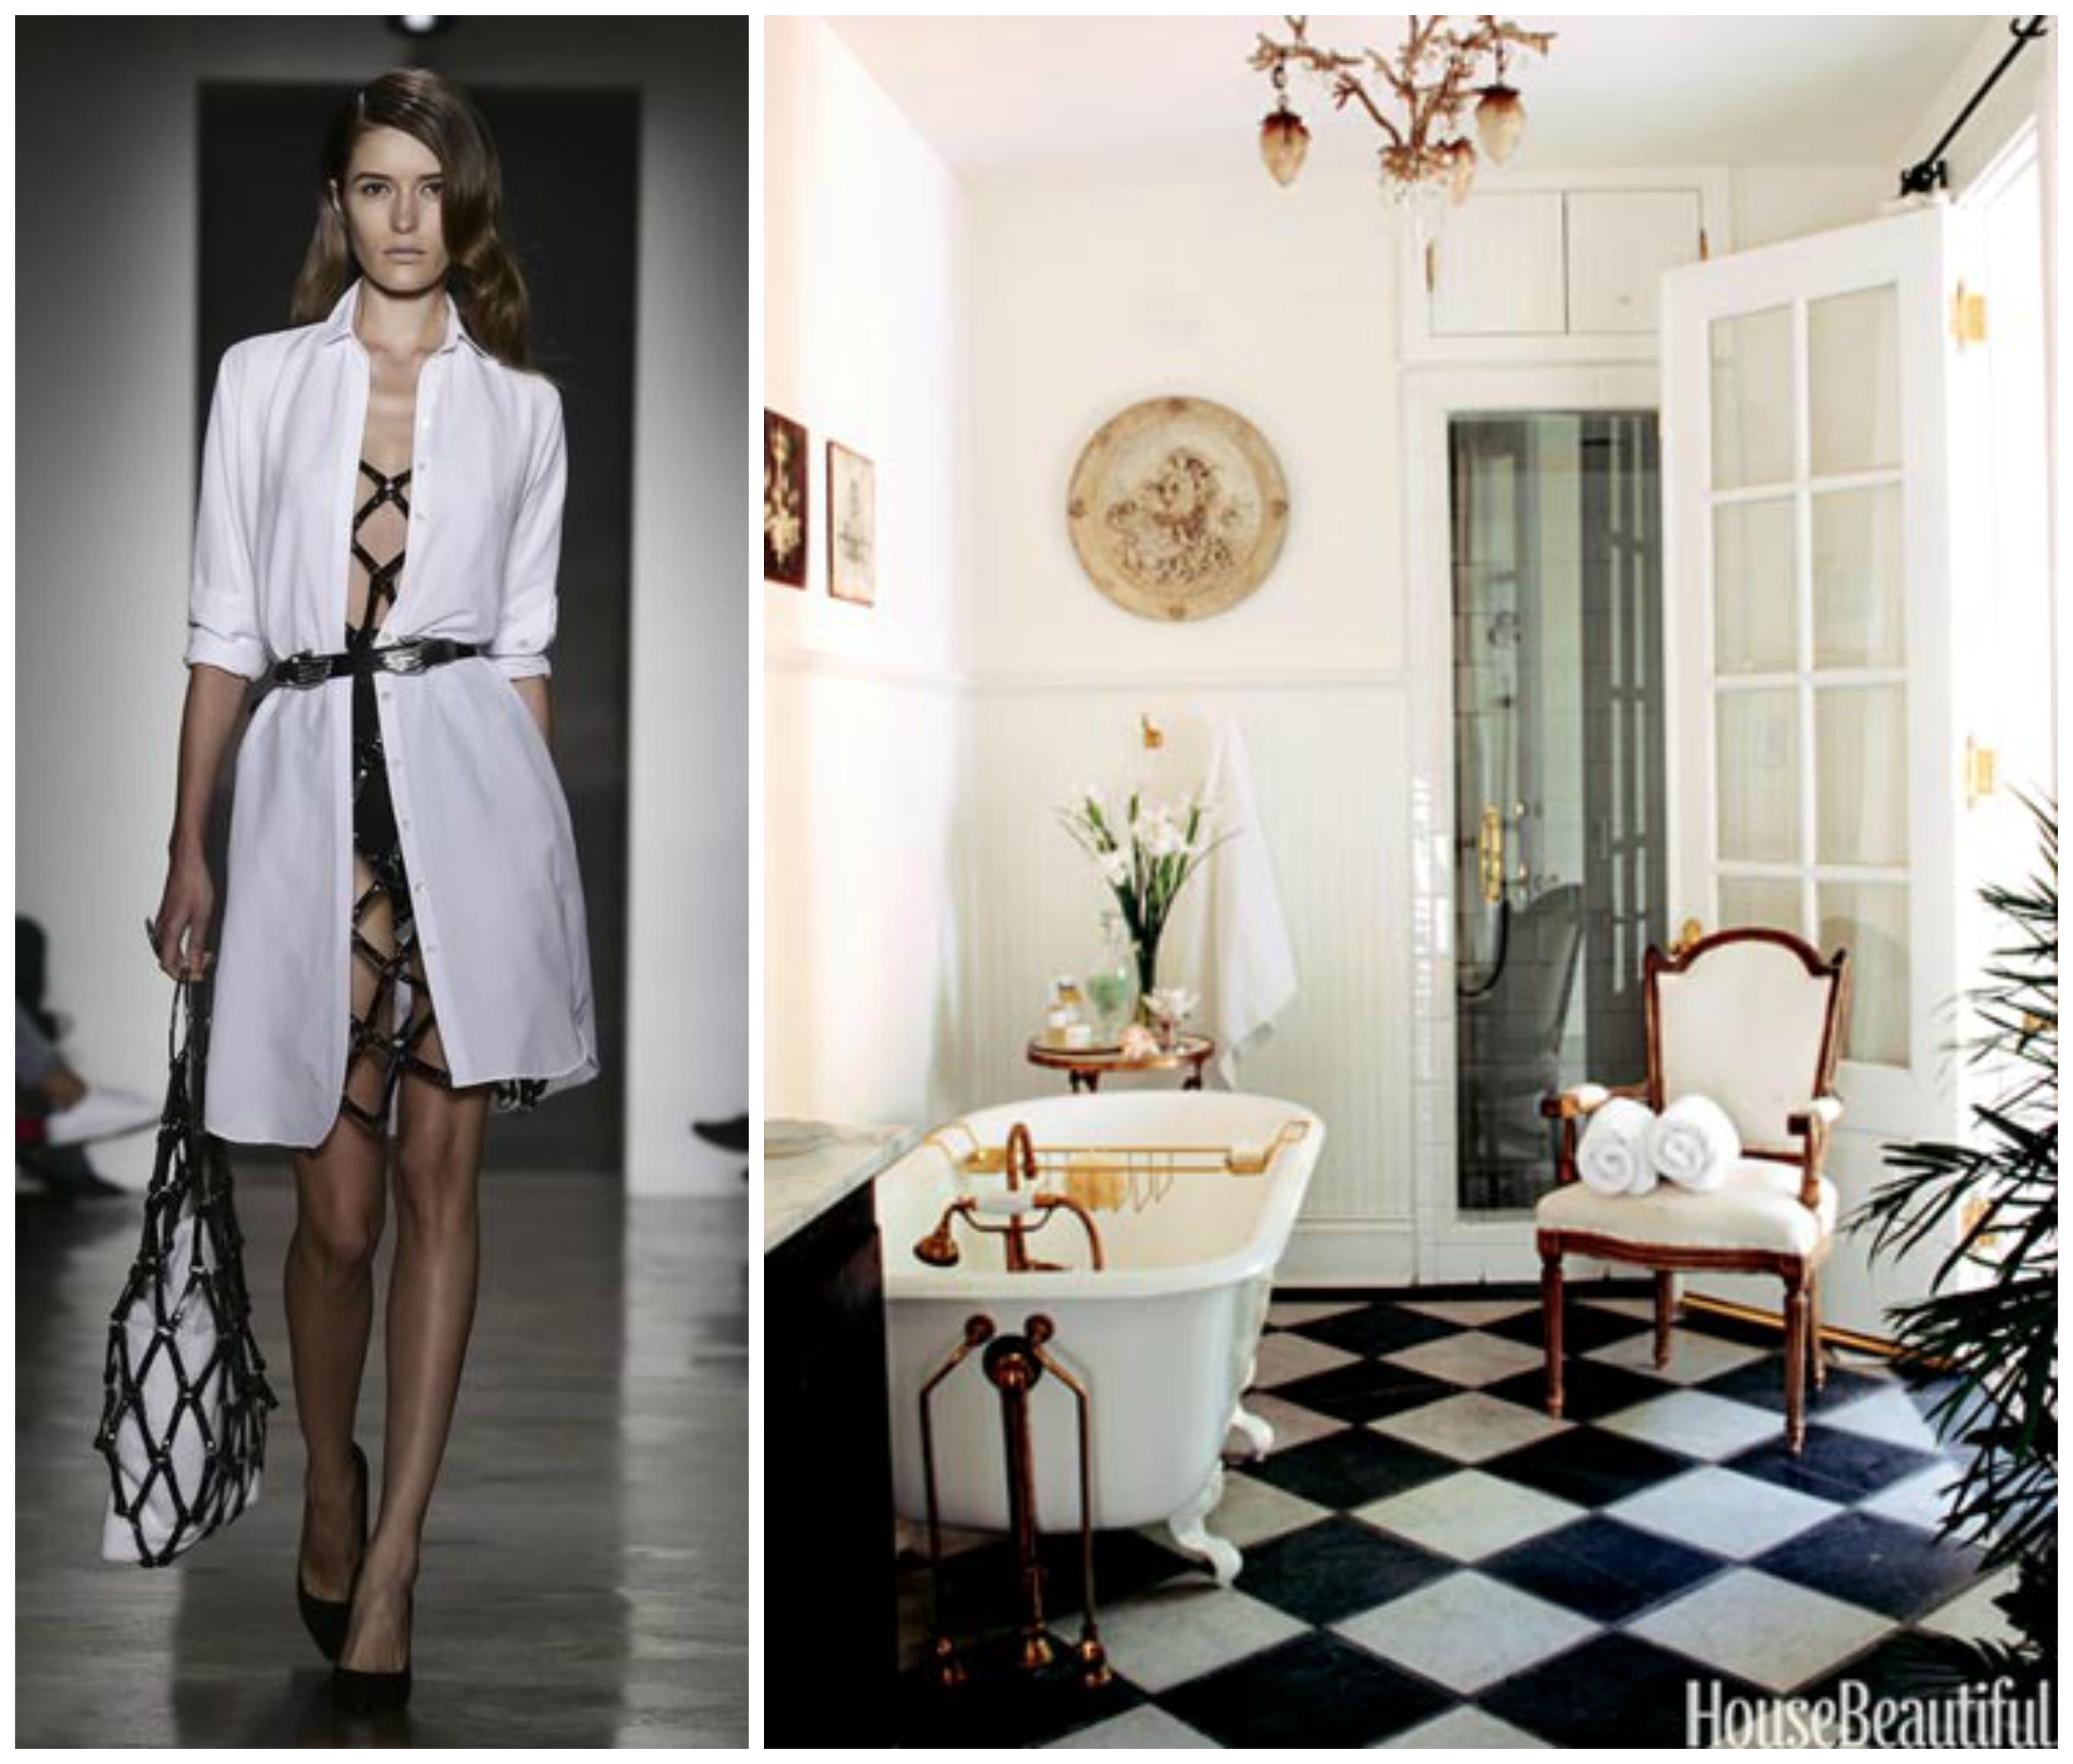 Inspiring! Couture Fashion Paired With Luxury Bathrooms